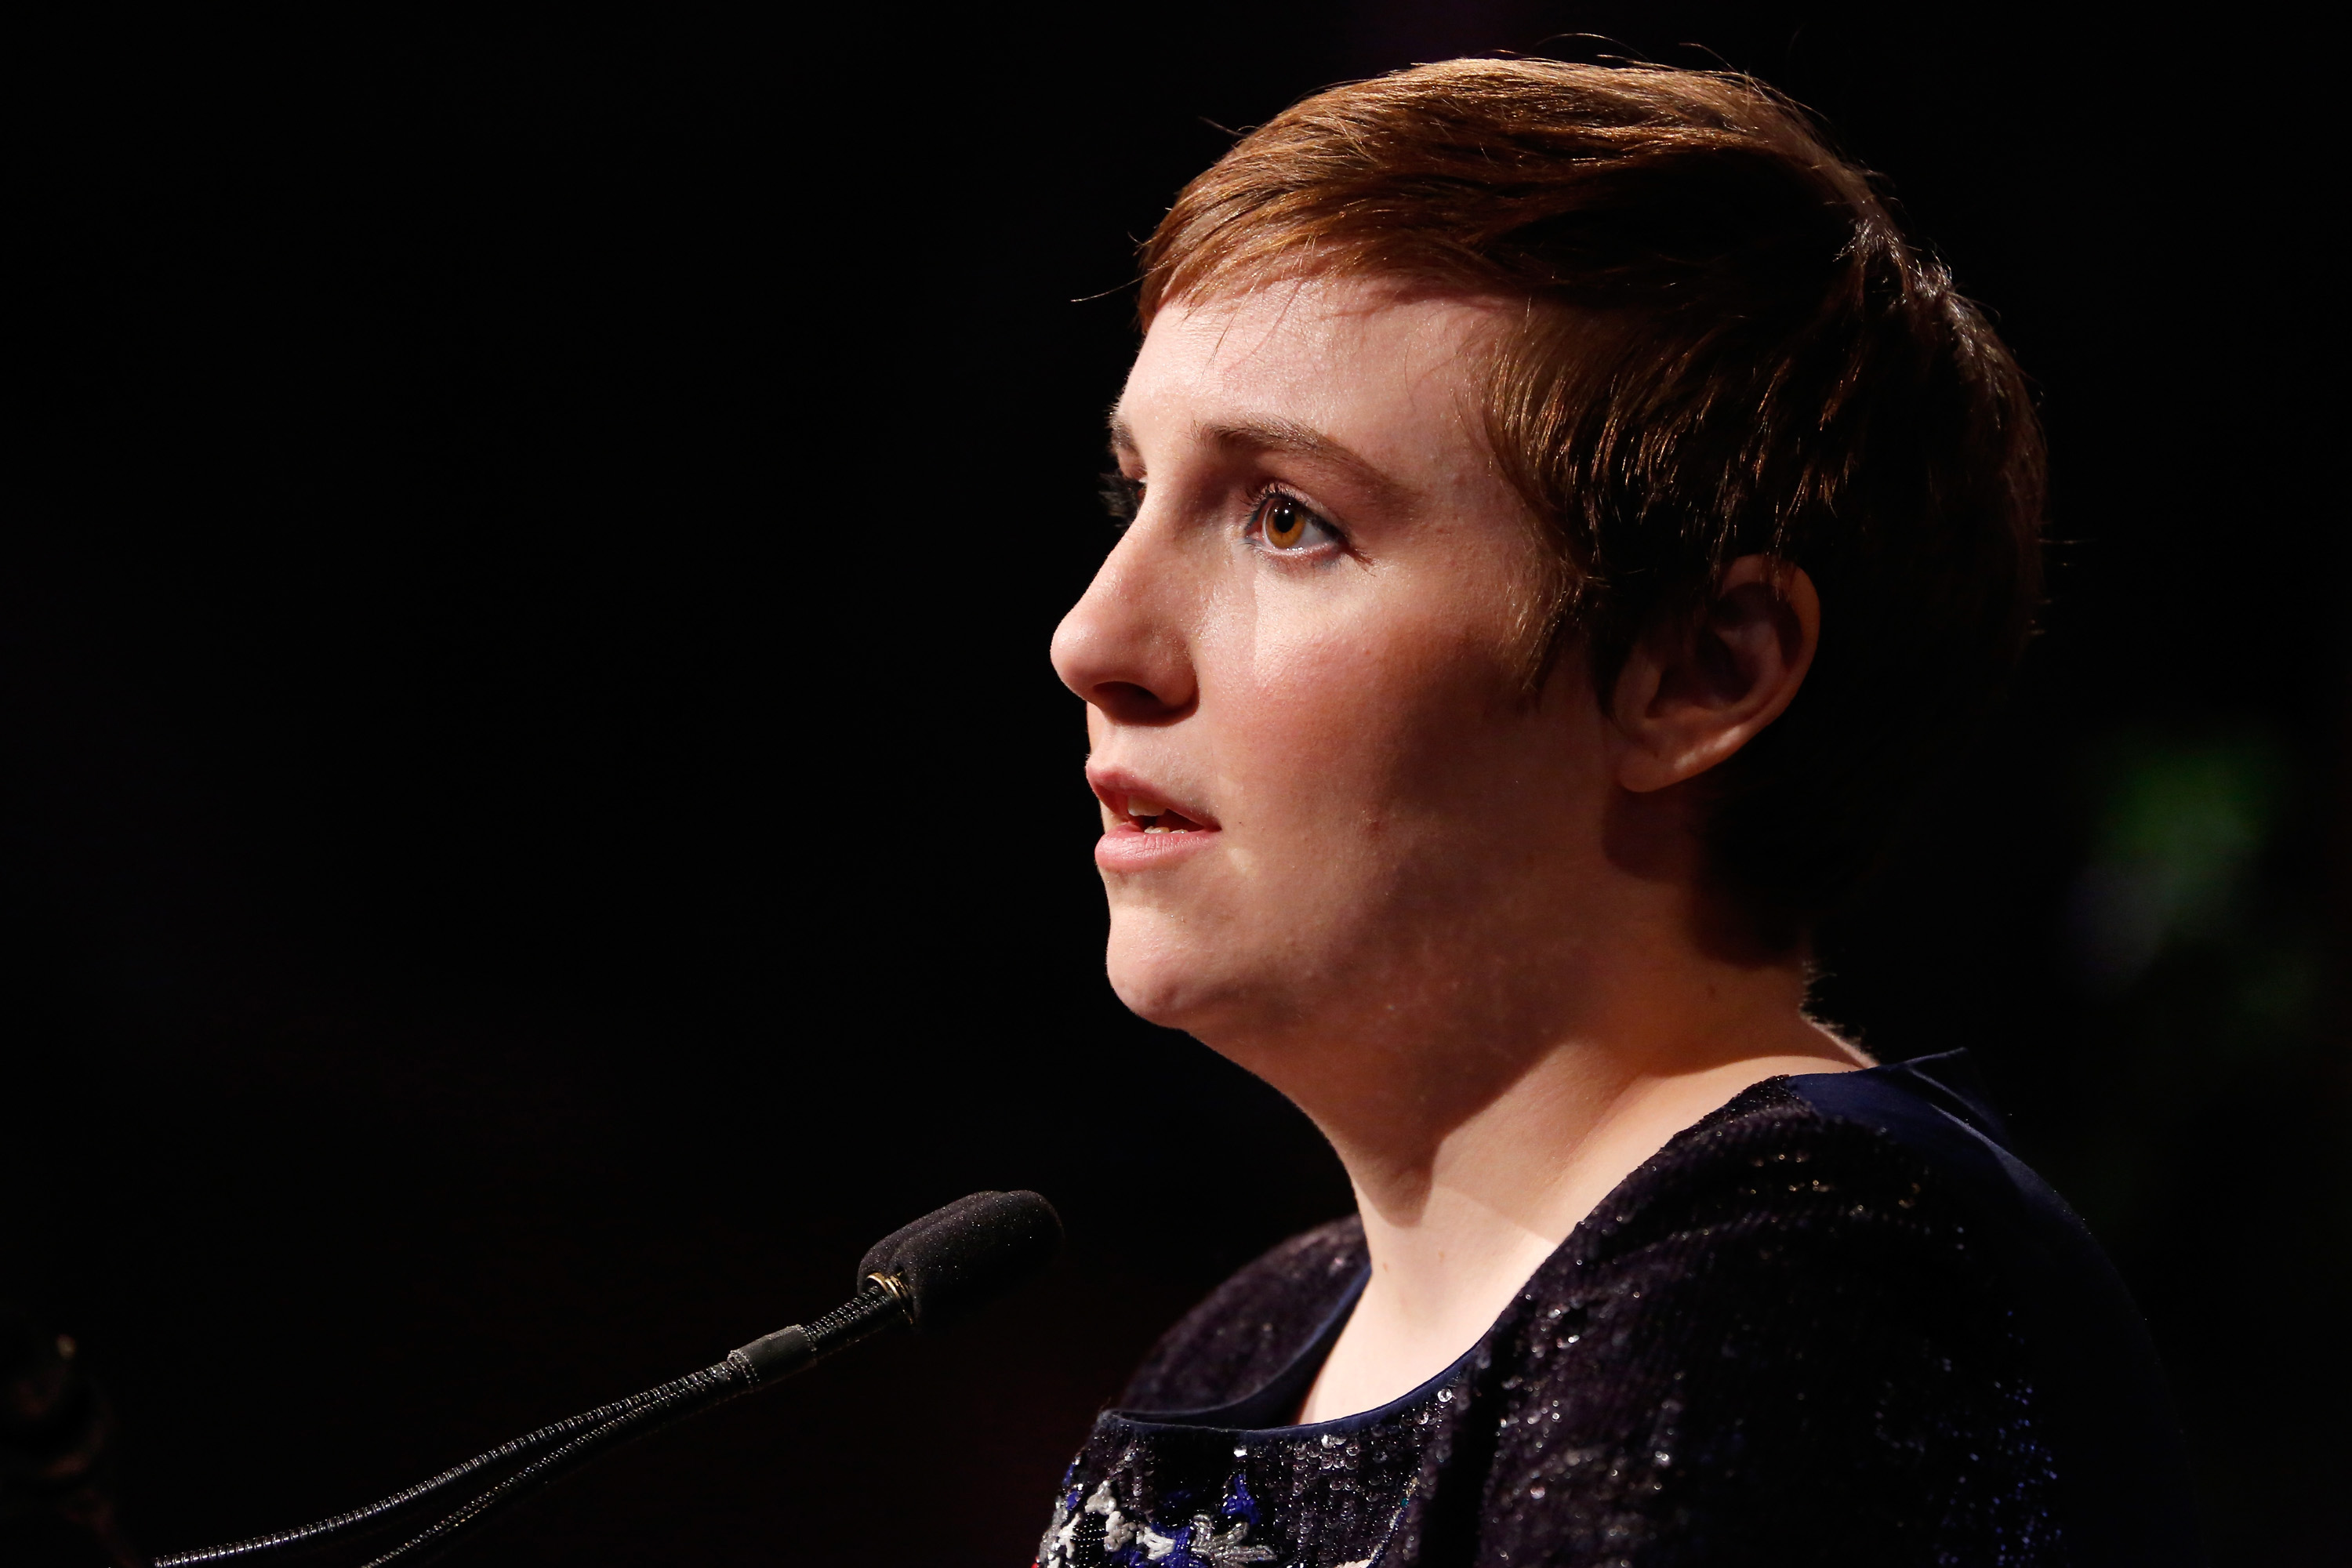 Honoree Lena Dunham speaks onstage at Variety's Power of Women: New York presented by Lifetime at Cipriani 42nd Street on April 24, 2015 in New York City.